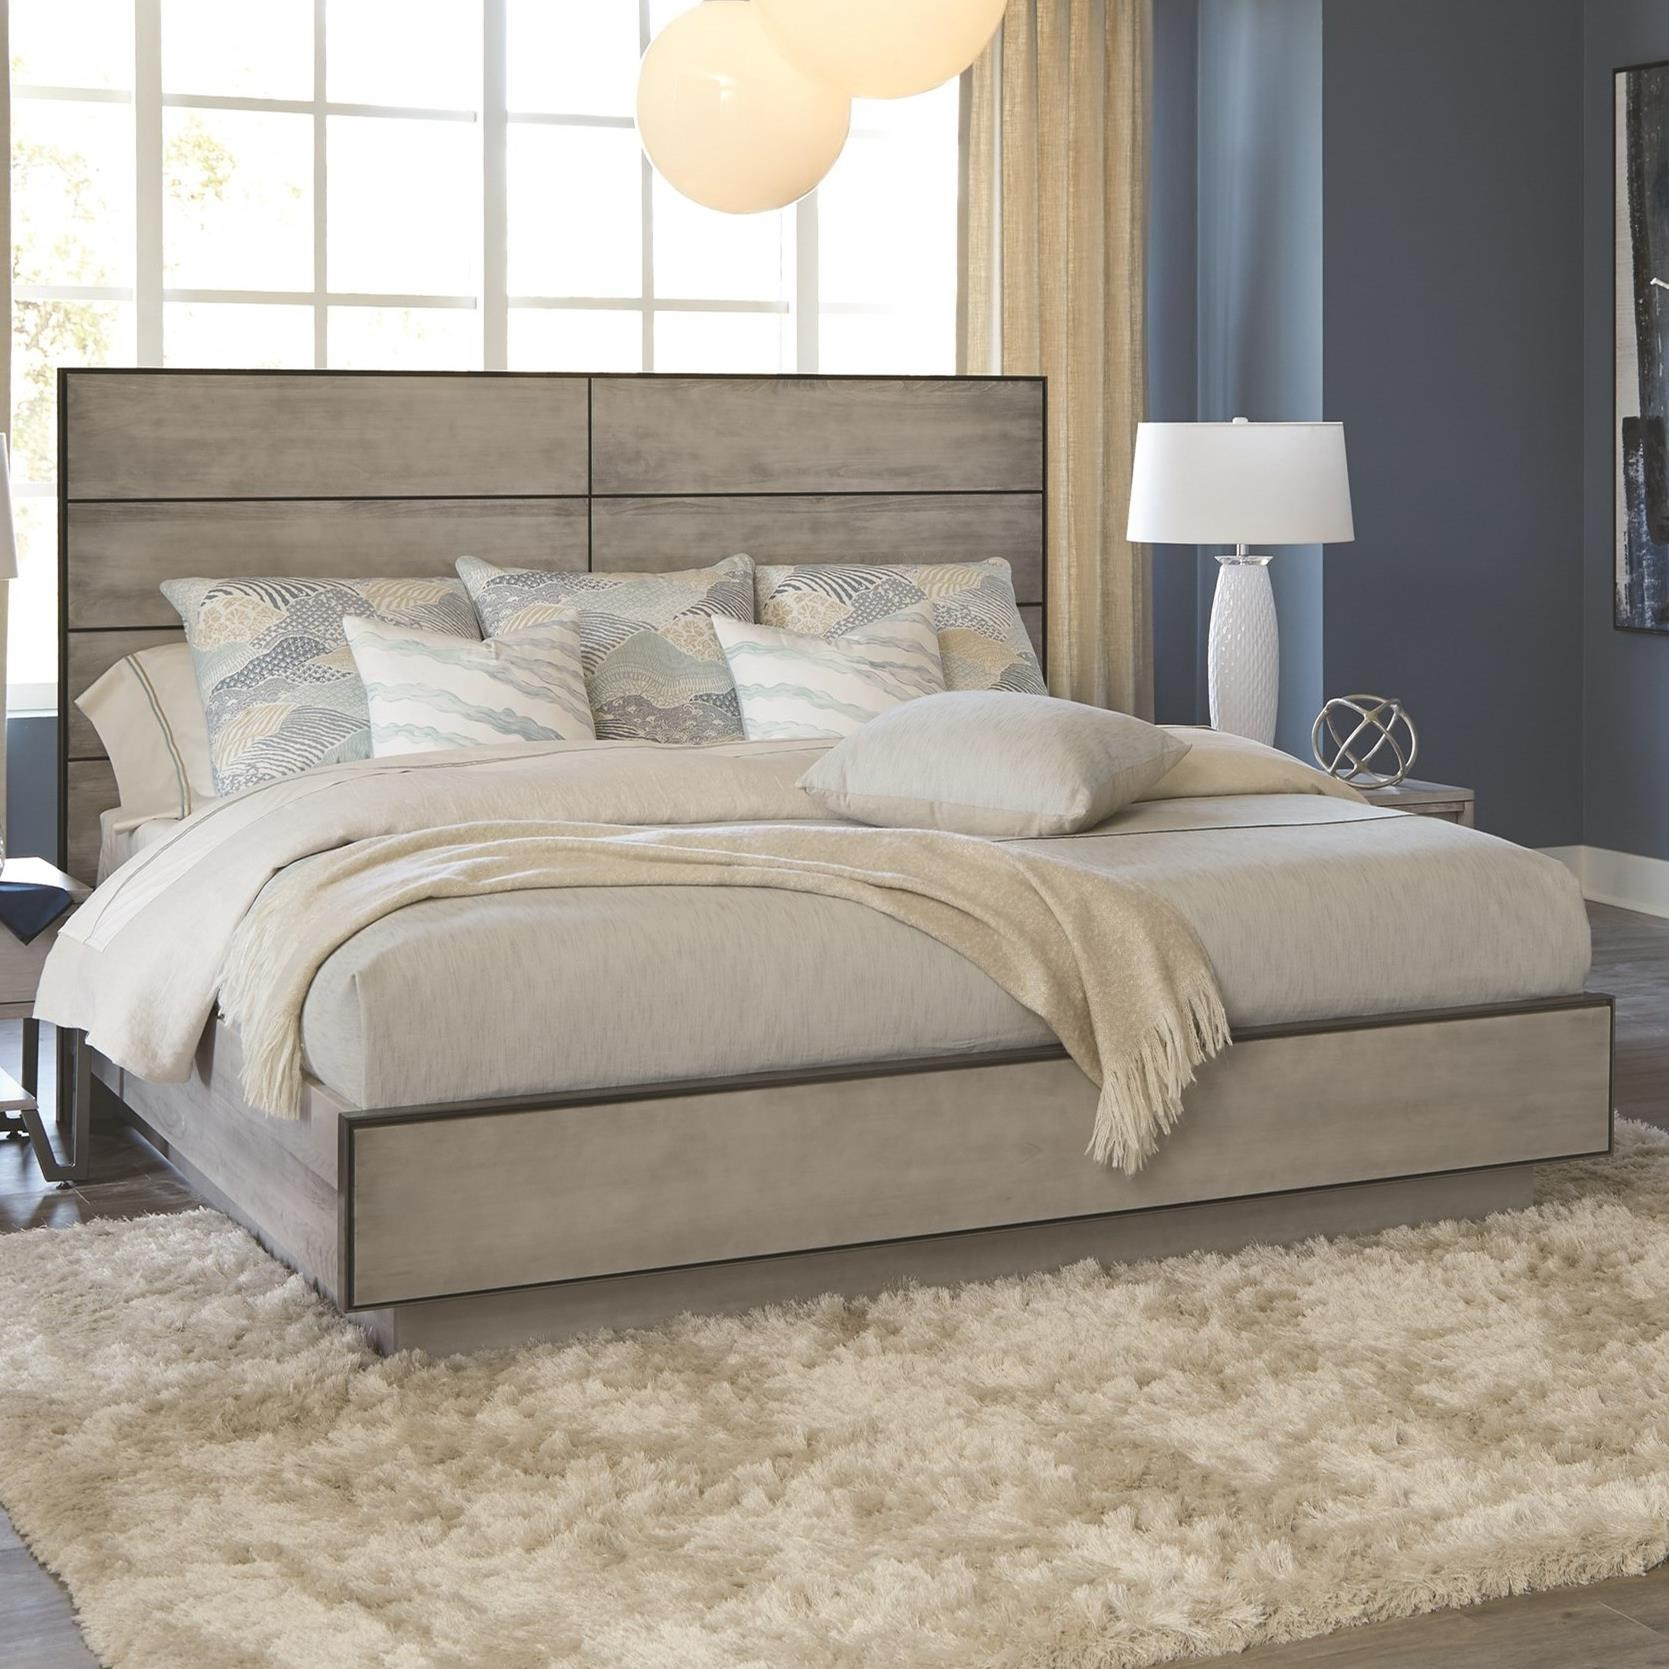 Milestone King Plinth Platform Bed by Durham at Stoney Creek Furniture